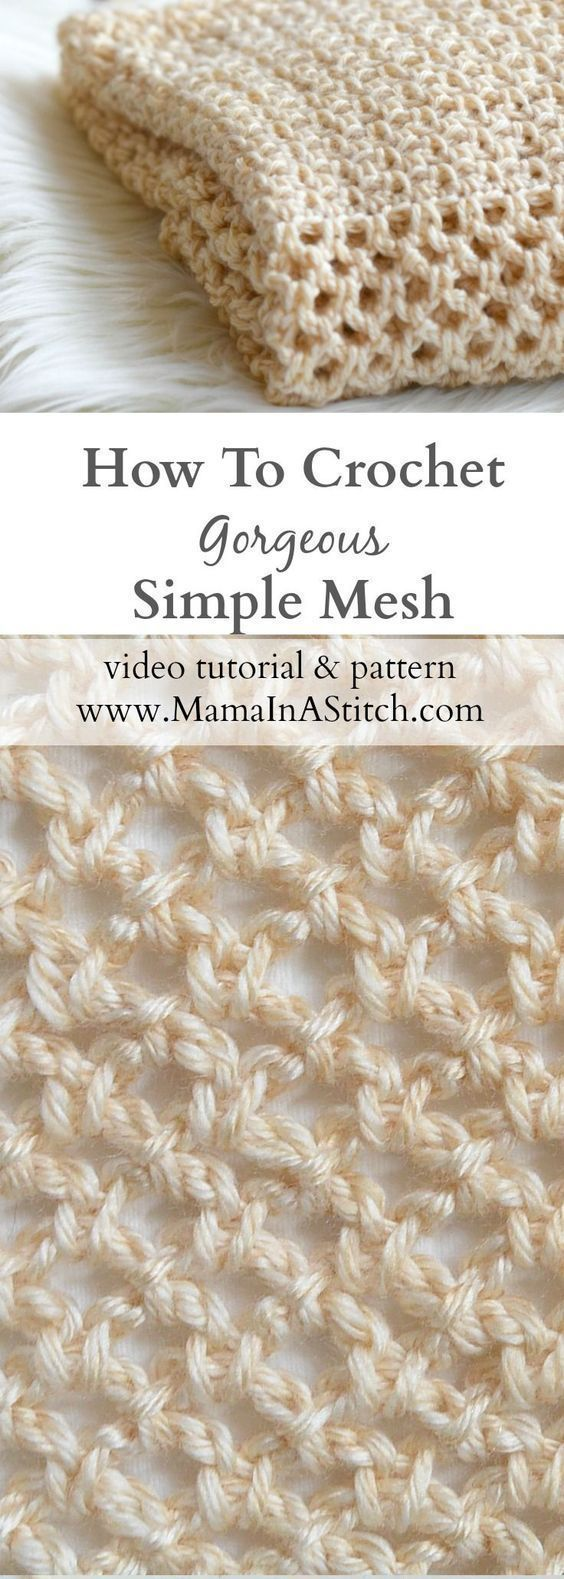 How To Crochet An Easy Mesh Stitch via @MamaInAStitch This is a modern mesh stitch works up beautifully and is so easy to make! Free pattern and tutorial. #easycrochet #crochetstitches